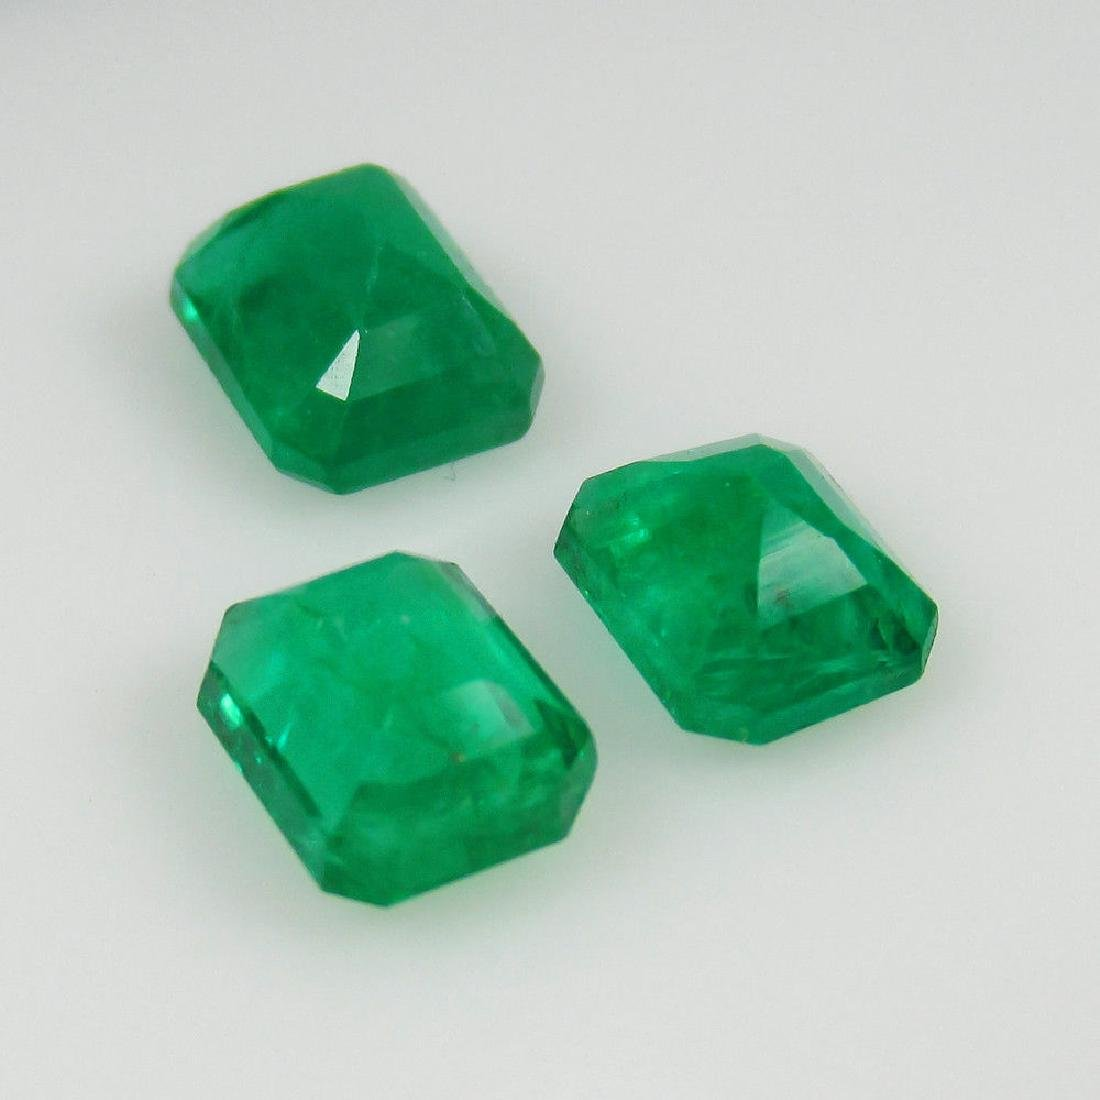 3.18 Ct Genuine Zambian Emerald Matching Octagon Set - 2